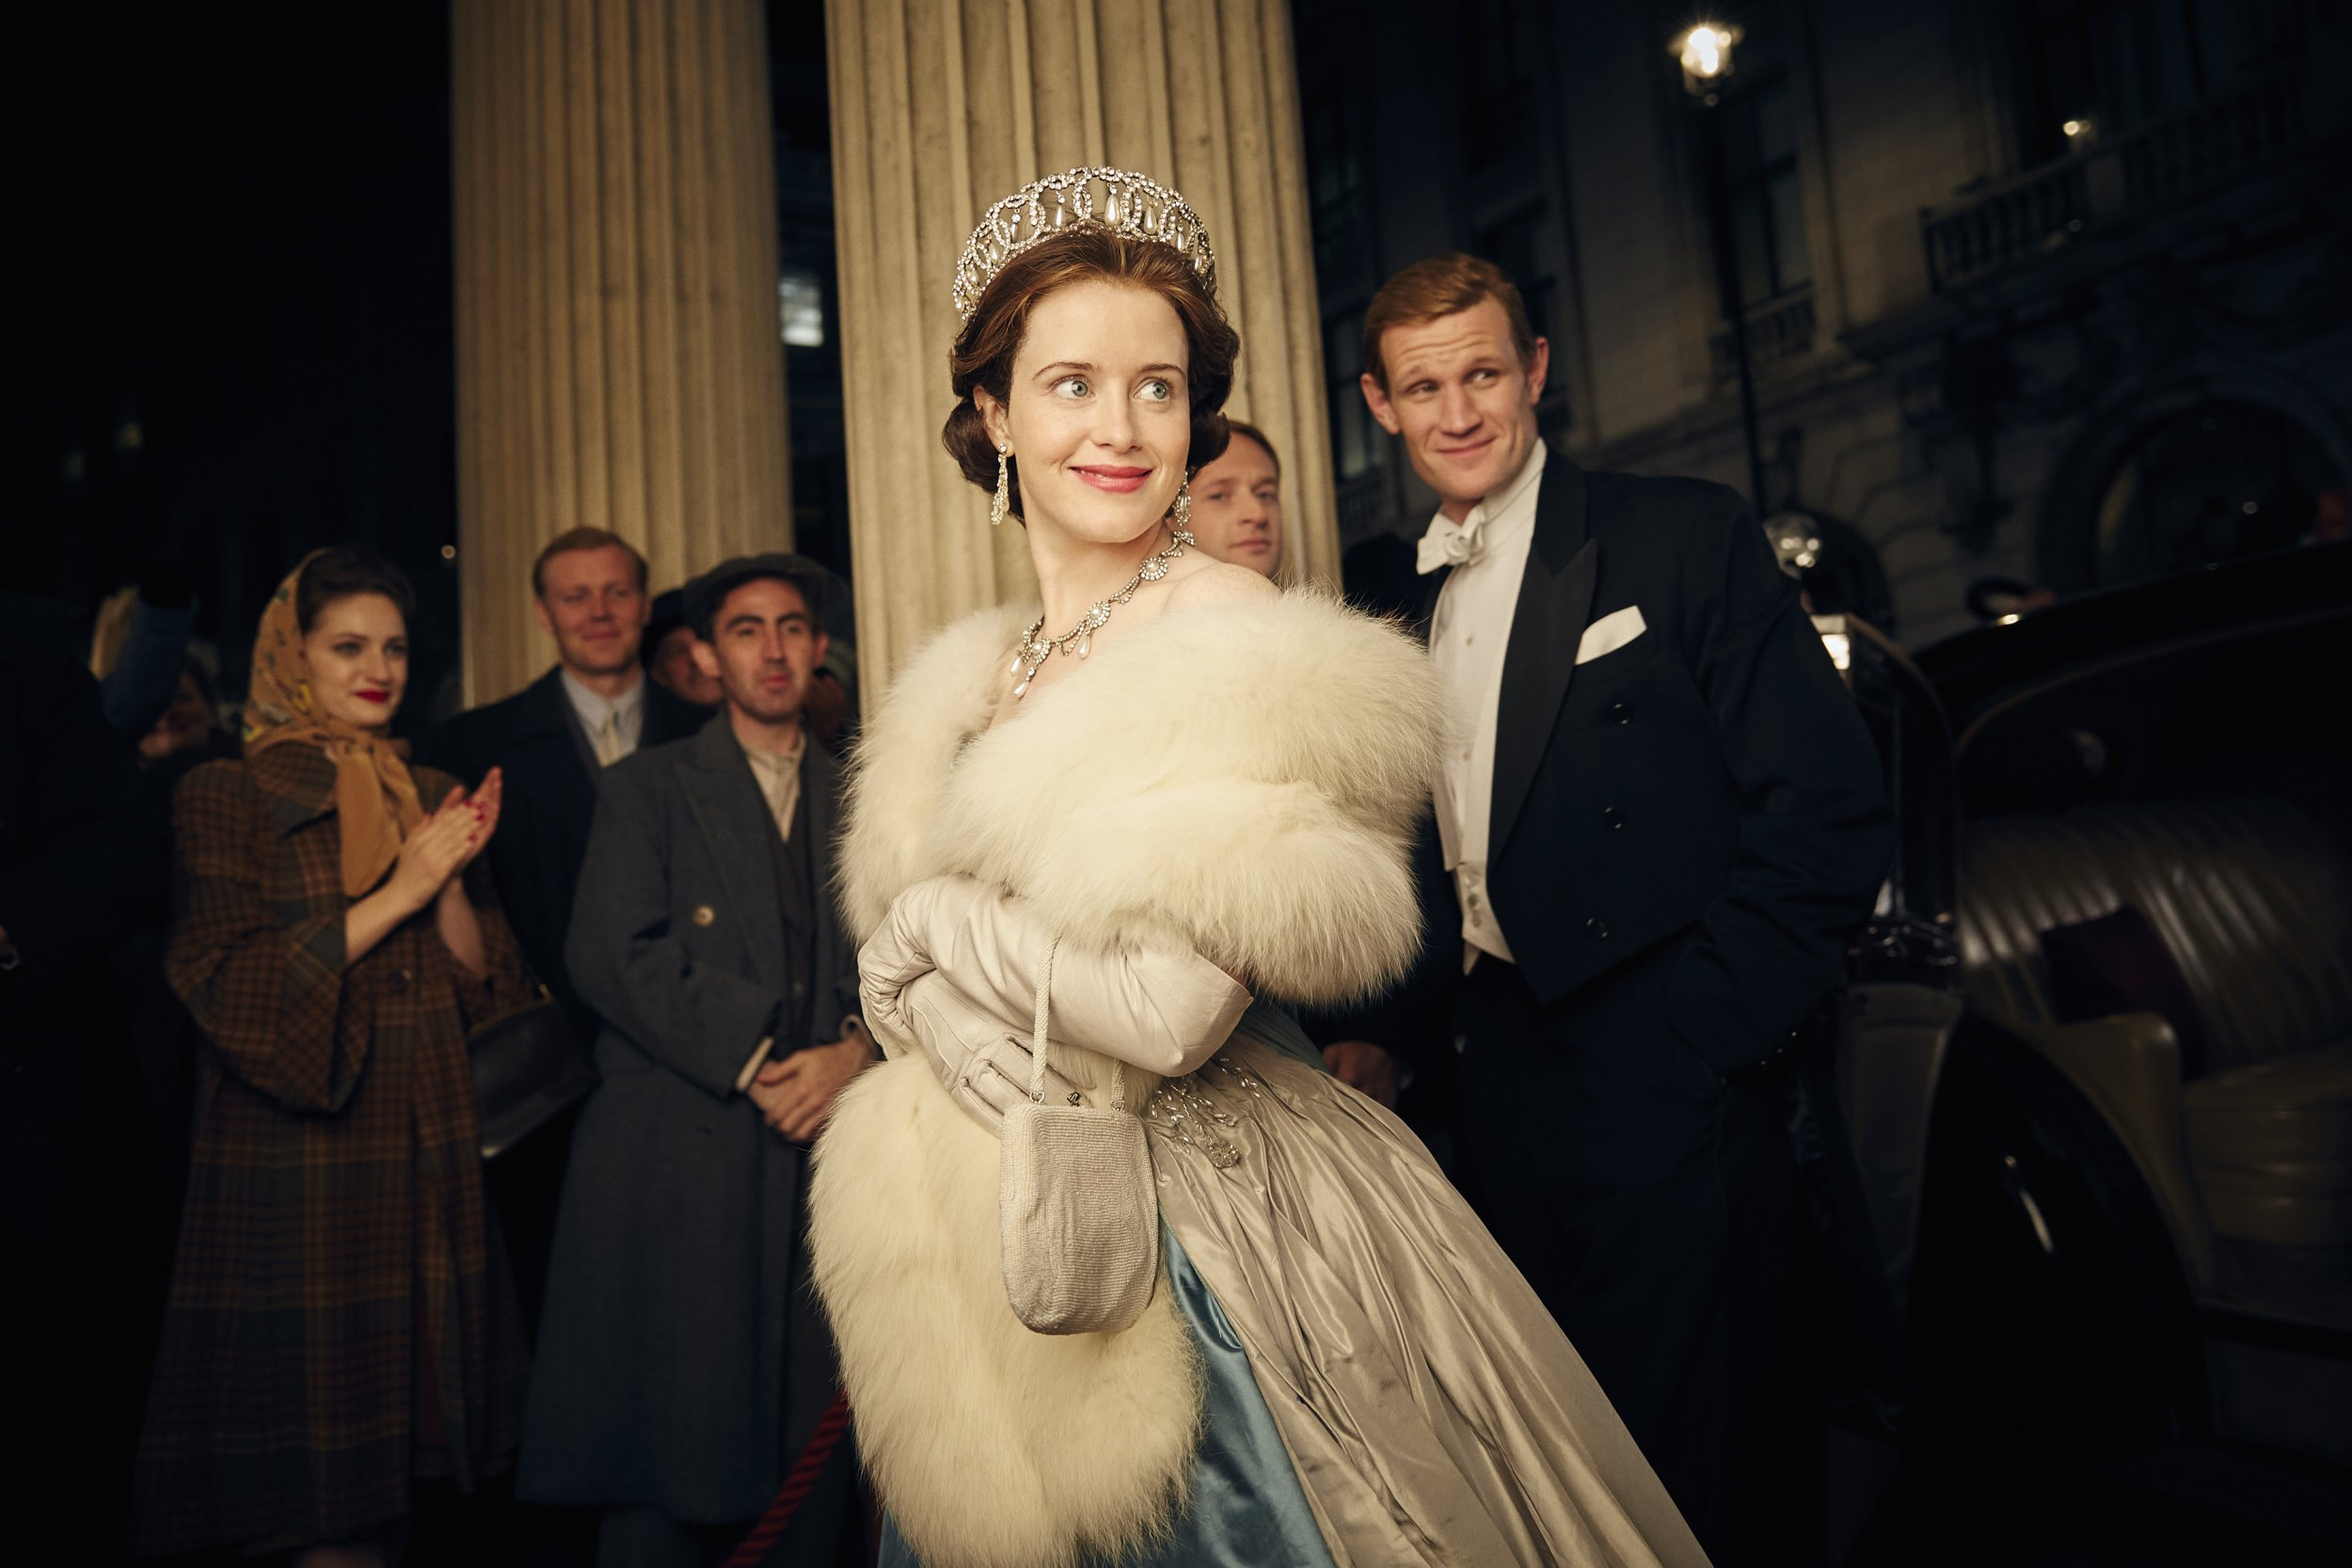 Claire Foy 'to receive £200,000 in back pay' over The Crown gender pay dispute